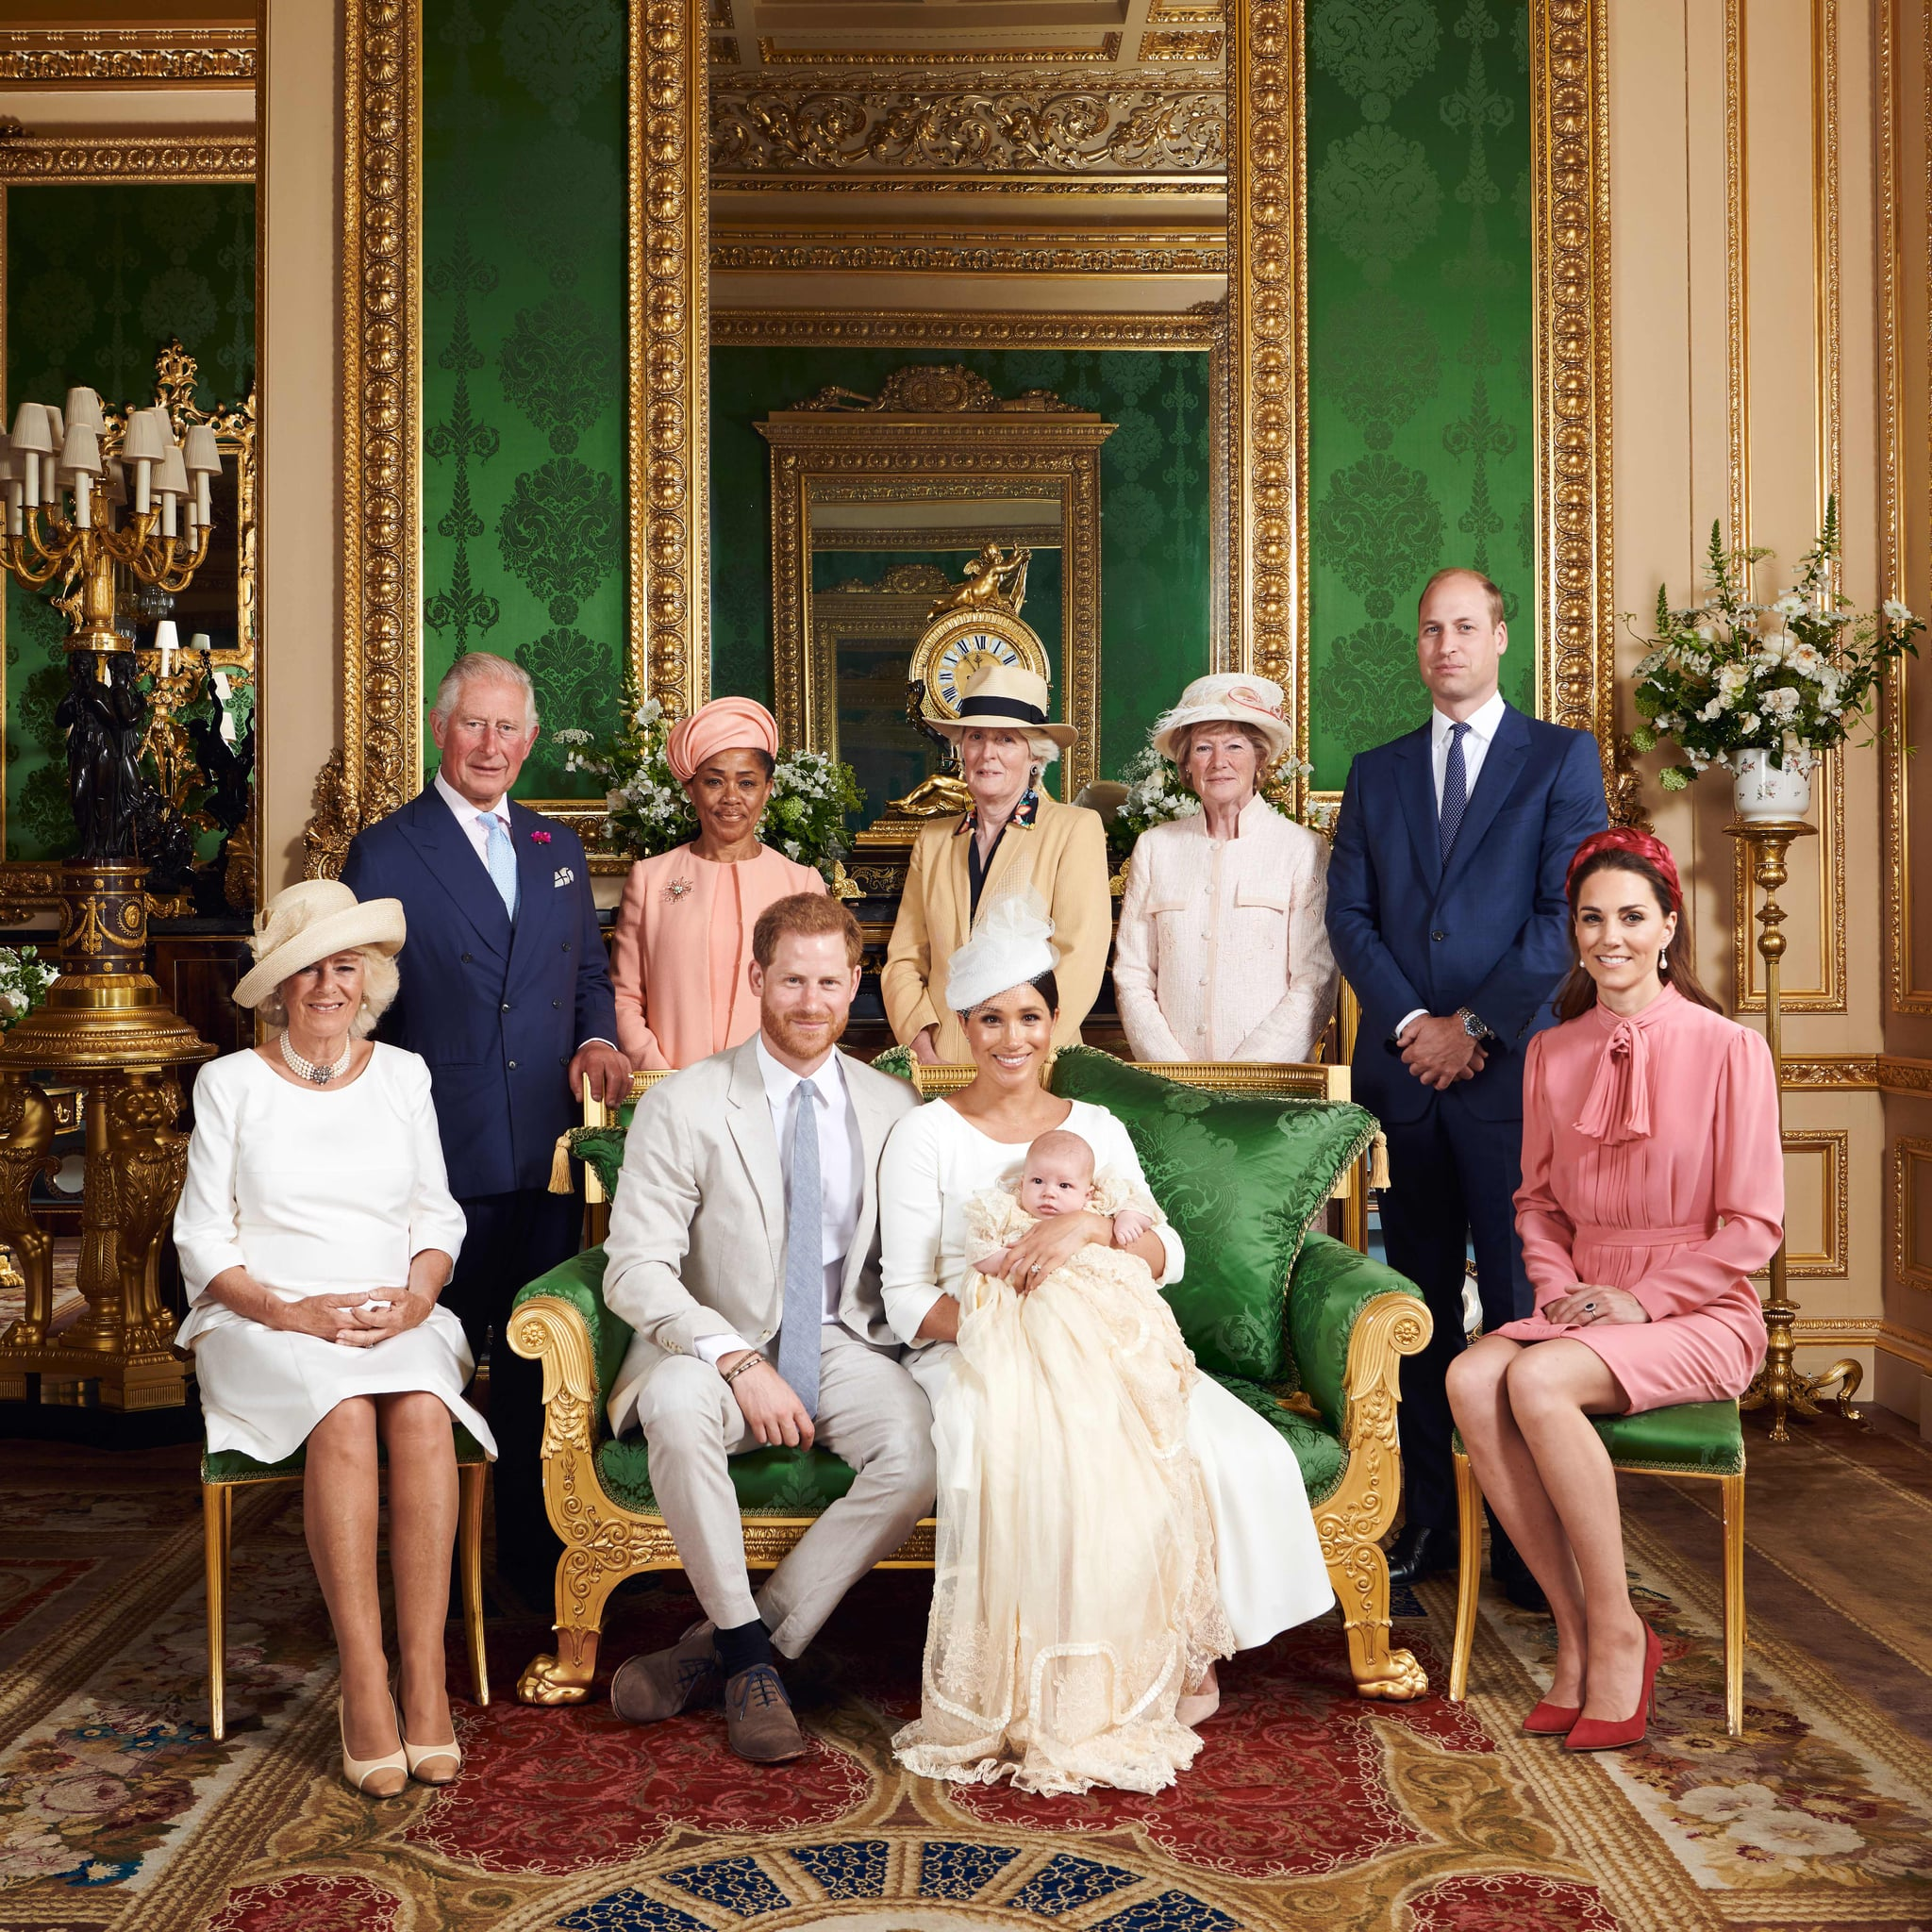 This official handout Christening photograph released by the Duke and Duchess of Sussex shows Britain's Prince Harry, Duke of Sussex (centre left), and his wife Meghan, Duchess of Sussex holding their baby son, Archie Harrison Mountbatten-Windsor flanked by (L-R) Britain's Camilla, Duchess of Cornwall, Britain's Prince Charles, Prince of Wales, Ms Doria Ragland, Lady Jane Fellowes, Lady Sarah McCorquodale, Britain's Prince William, Duke of Cambridge, and Britain's Catherine, Duchess of Cambridge in the Green Drawing Room at Windsor Castle, west of London on July 6, 2019. - Prince Harry and his wife Meghan had their baby son Archie christened on Saturday at a private ceremony. (Photo by Chris ALLERTON / SUSSEXROYAL / AFP) / XGTY / RESTRICTED TO EDITORIAL USE - MANDATORY CREDIT